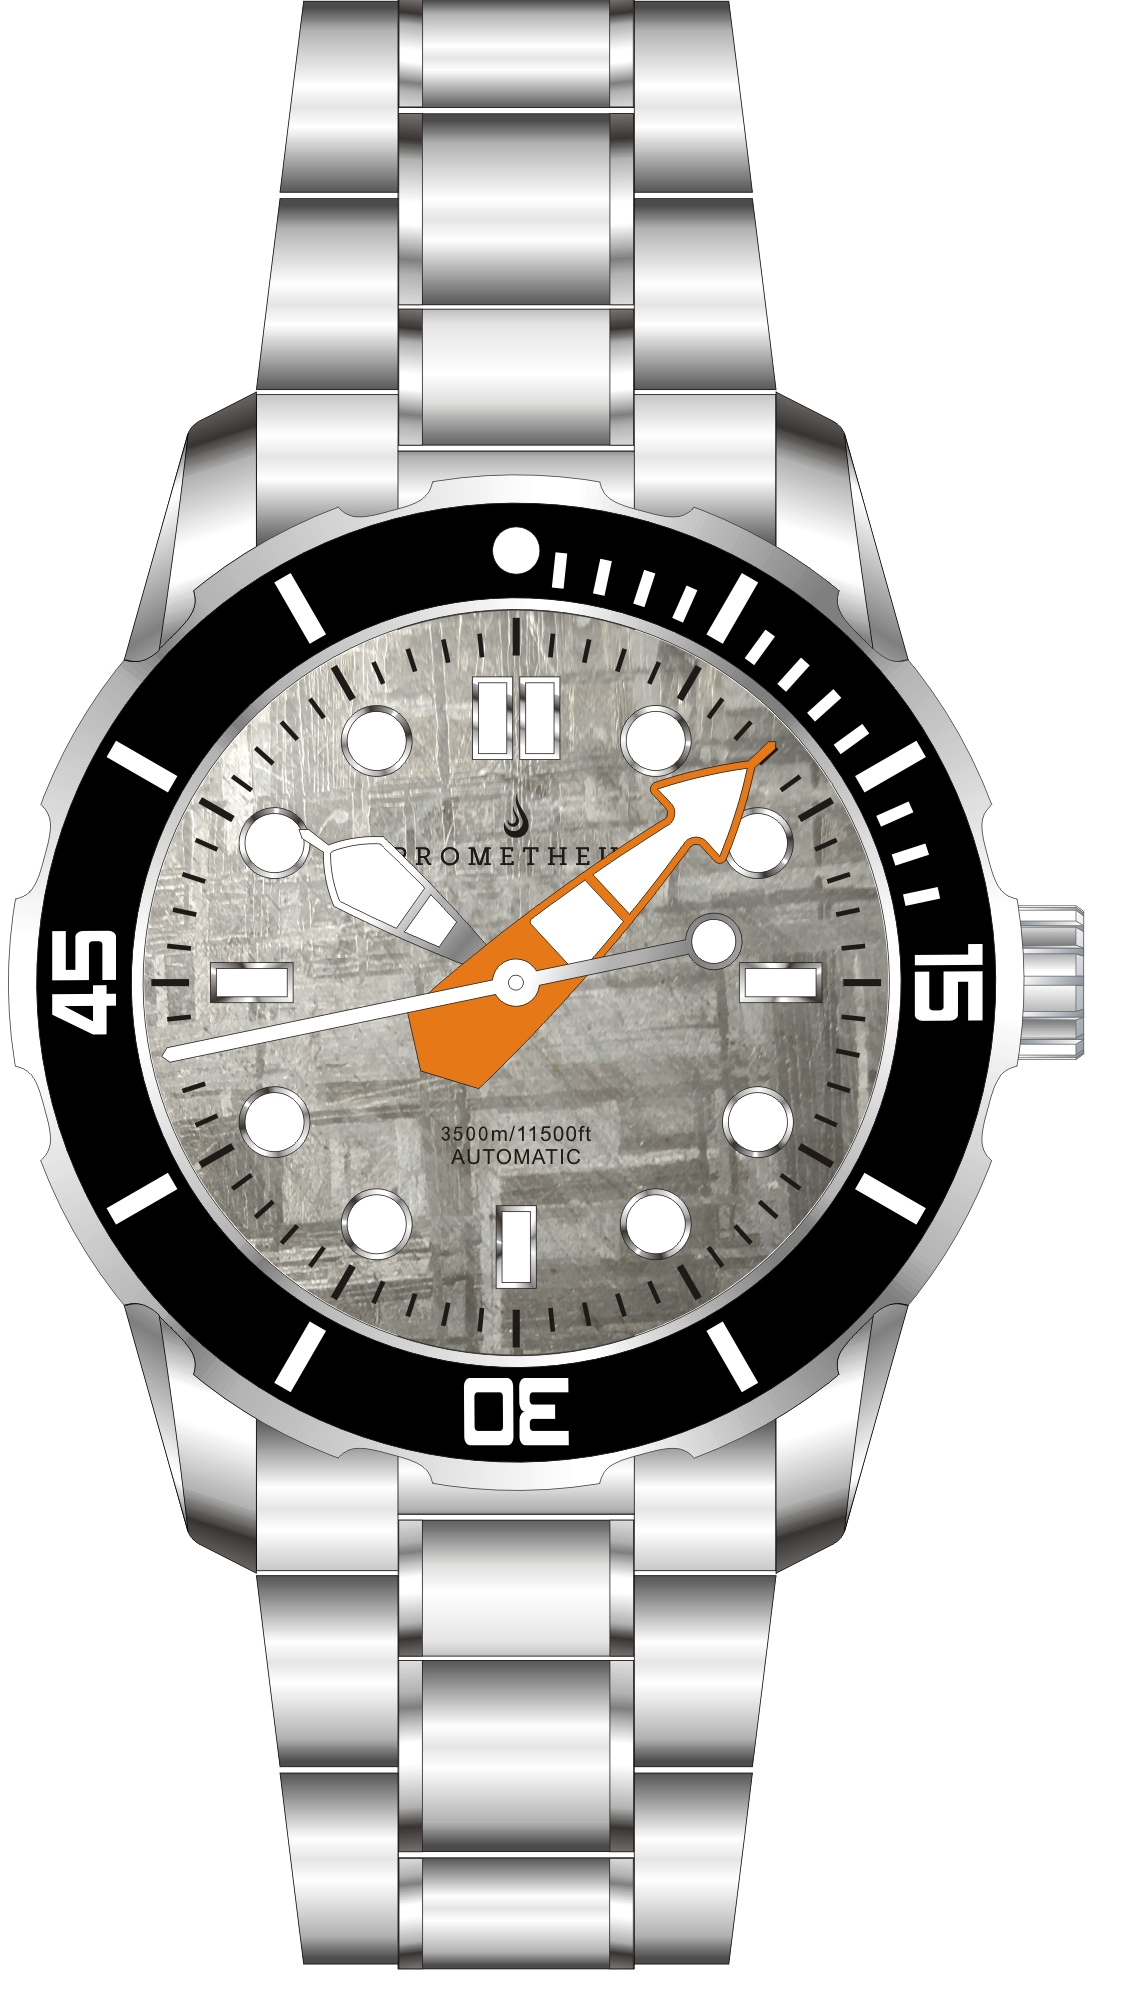 Pre-Order Prometheus Poseidon Meteorite Dial Modern Diver Hands Orange No Date 3500m Diver Watch Automatic Miyota 9015